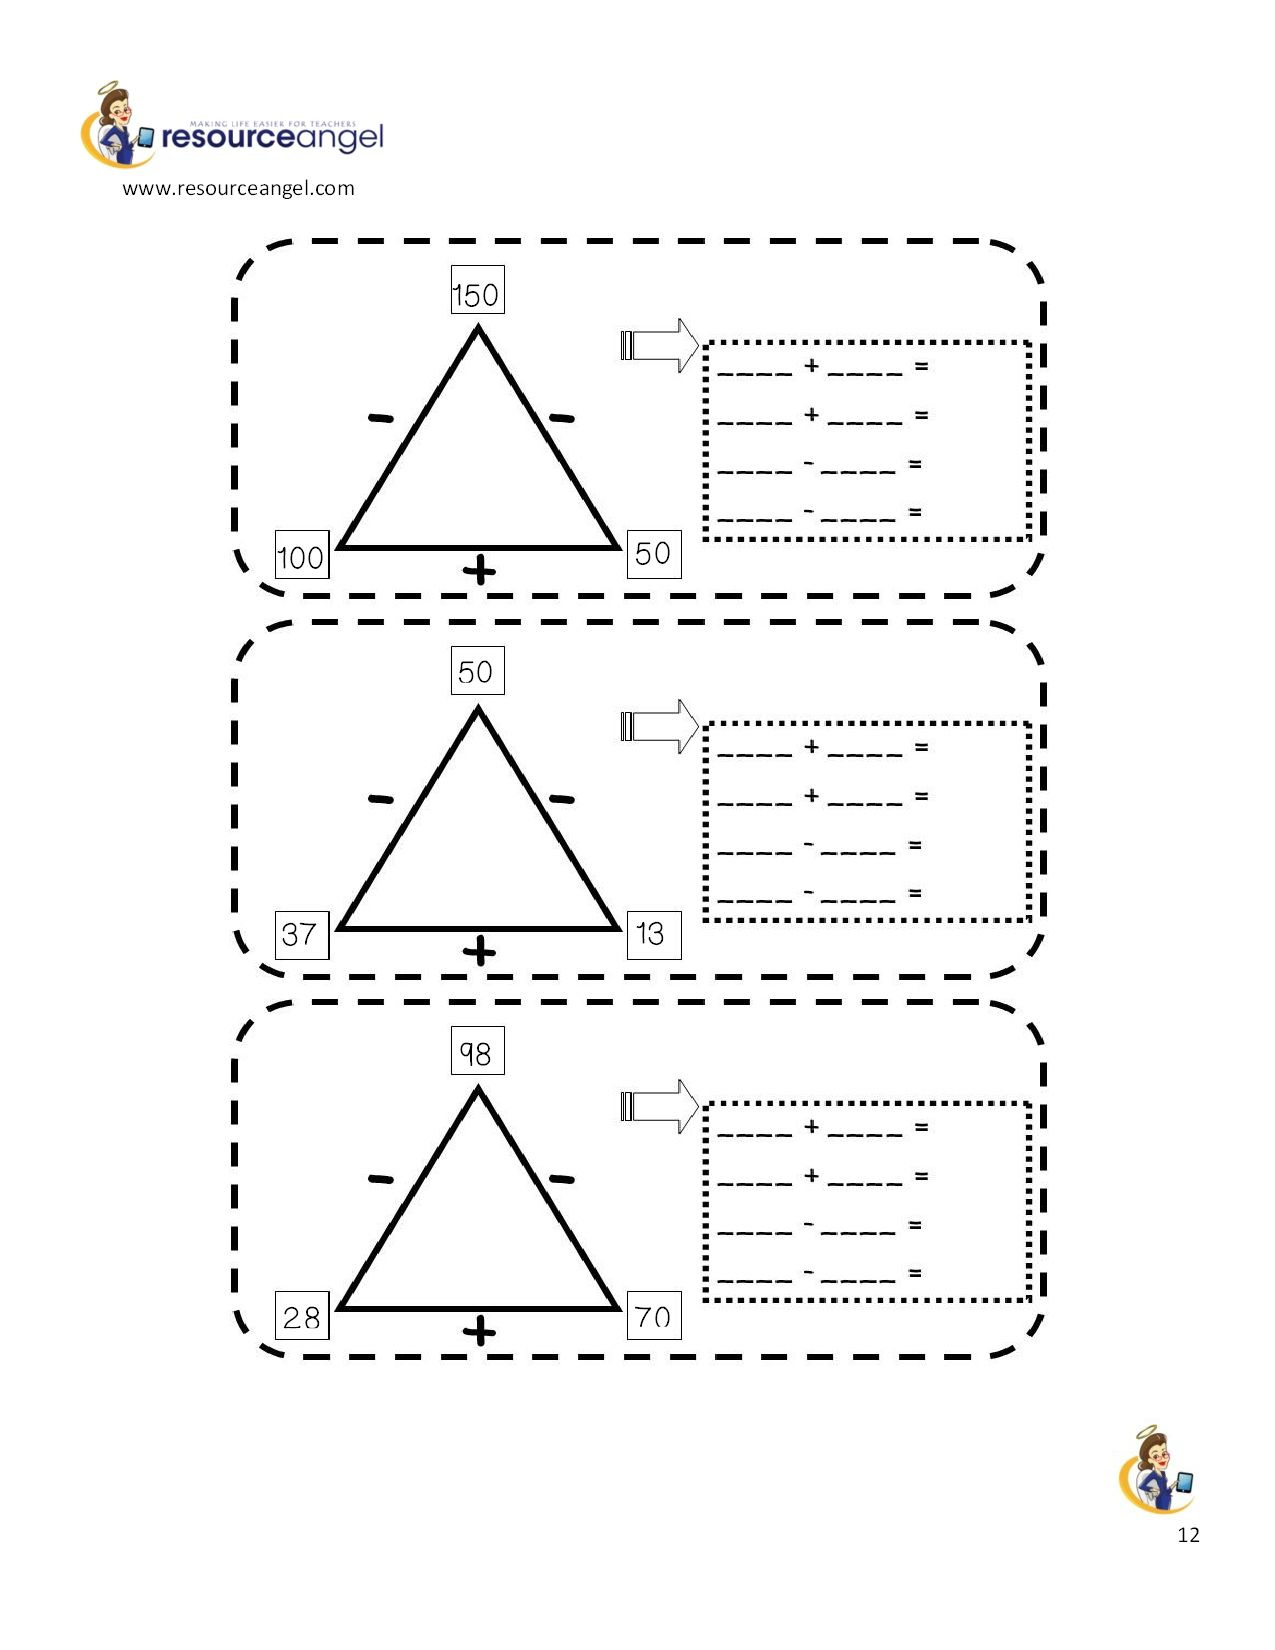 A Page From The Inverse Operations Pack Produced By